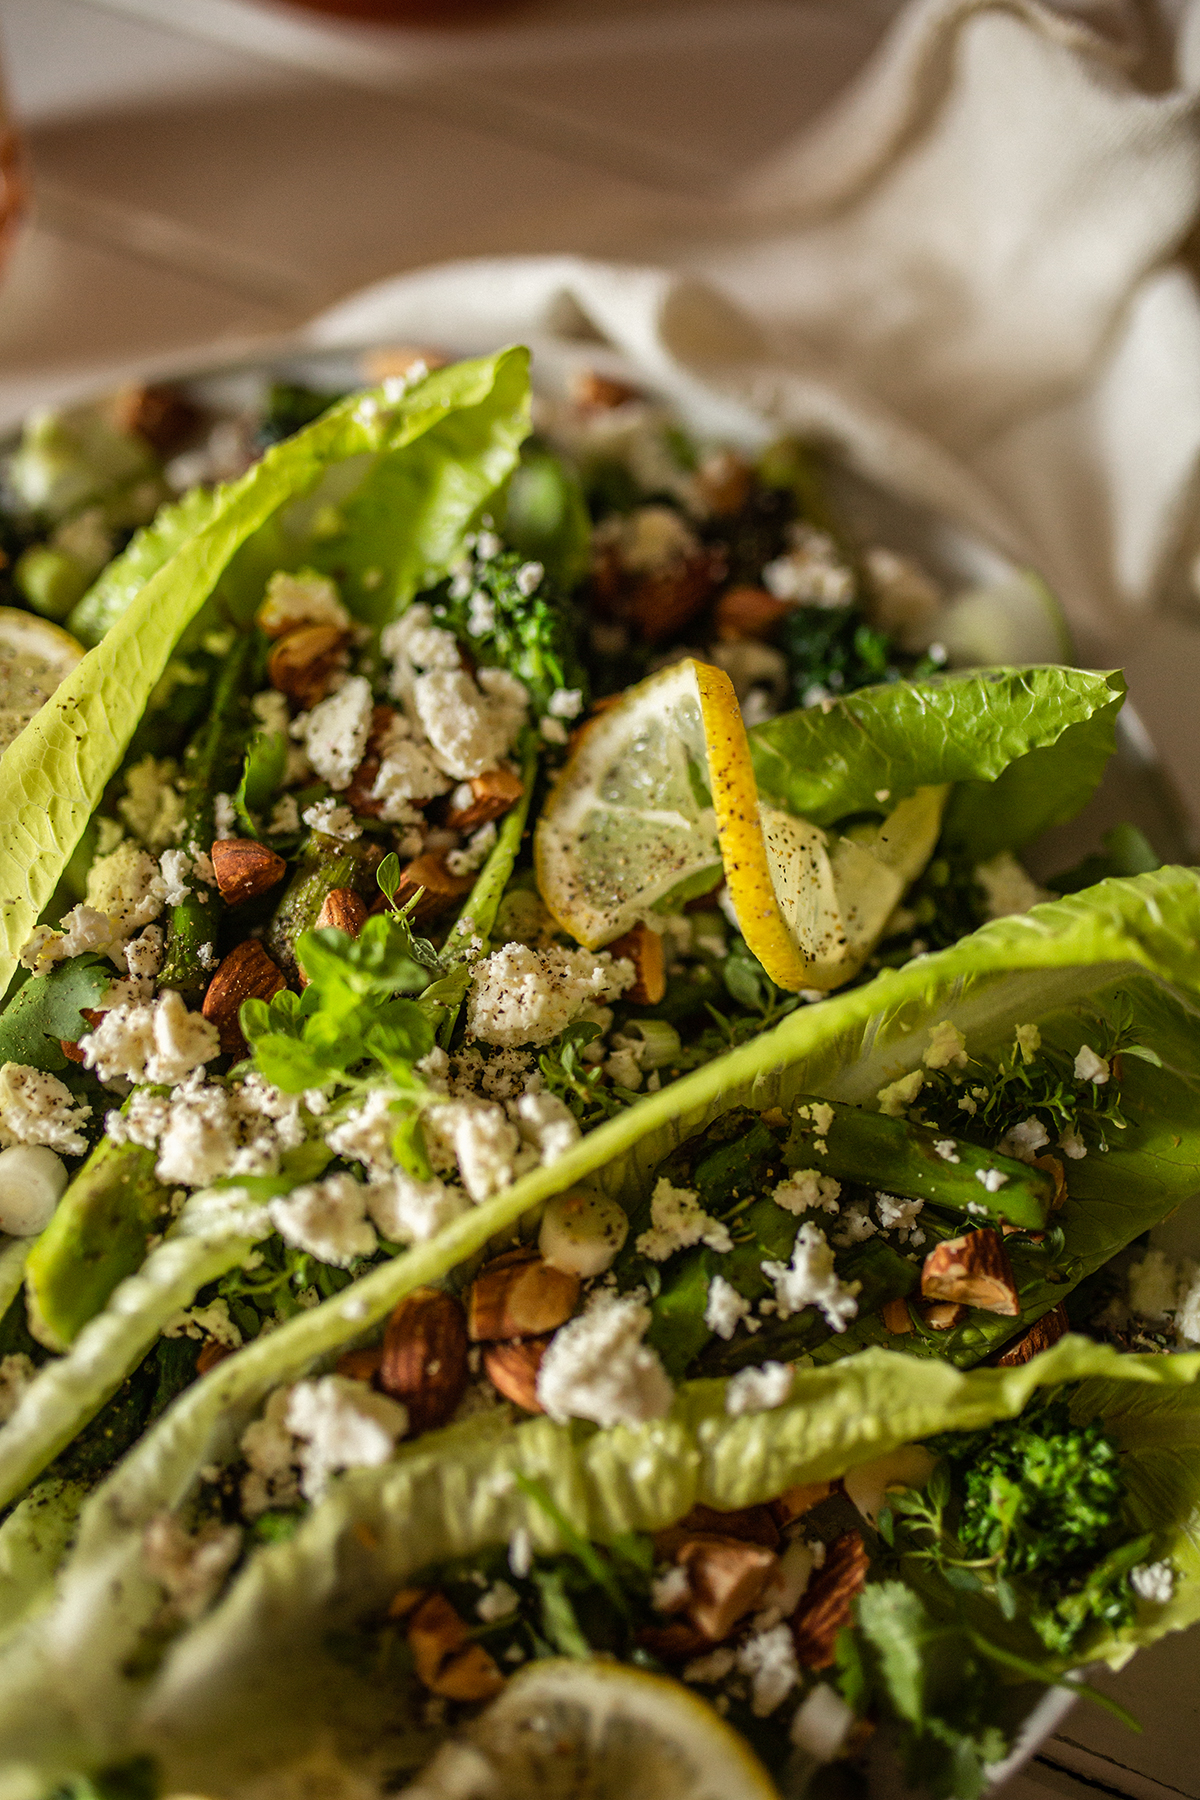 Broccoli Rabe, Asparagus and Feta Salad Recipe |Temps d'un Café